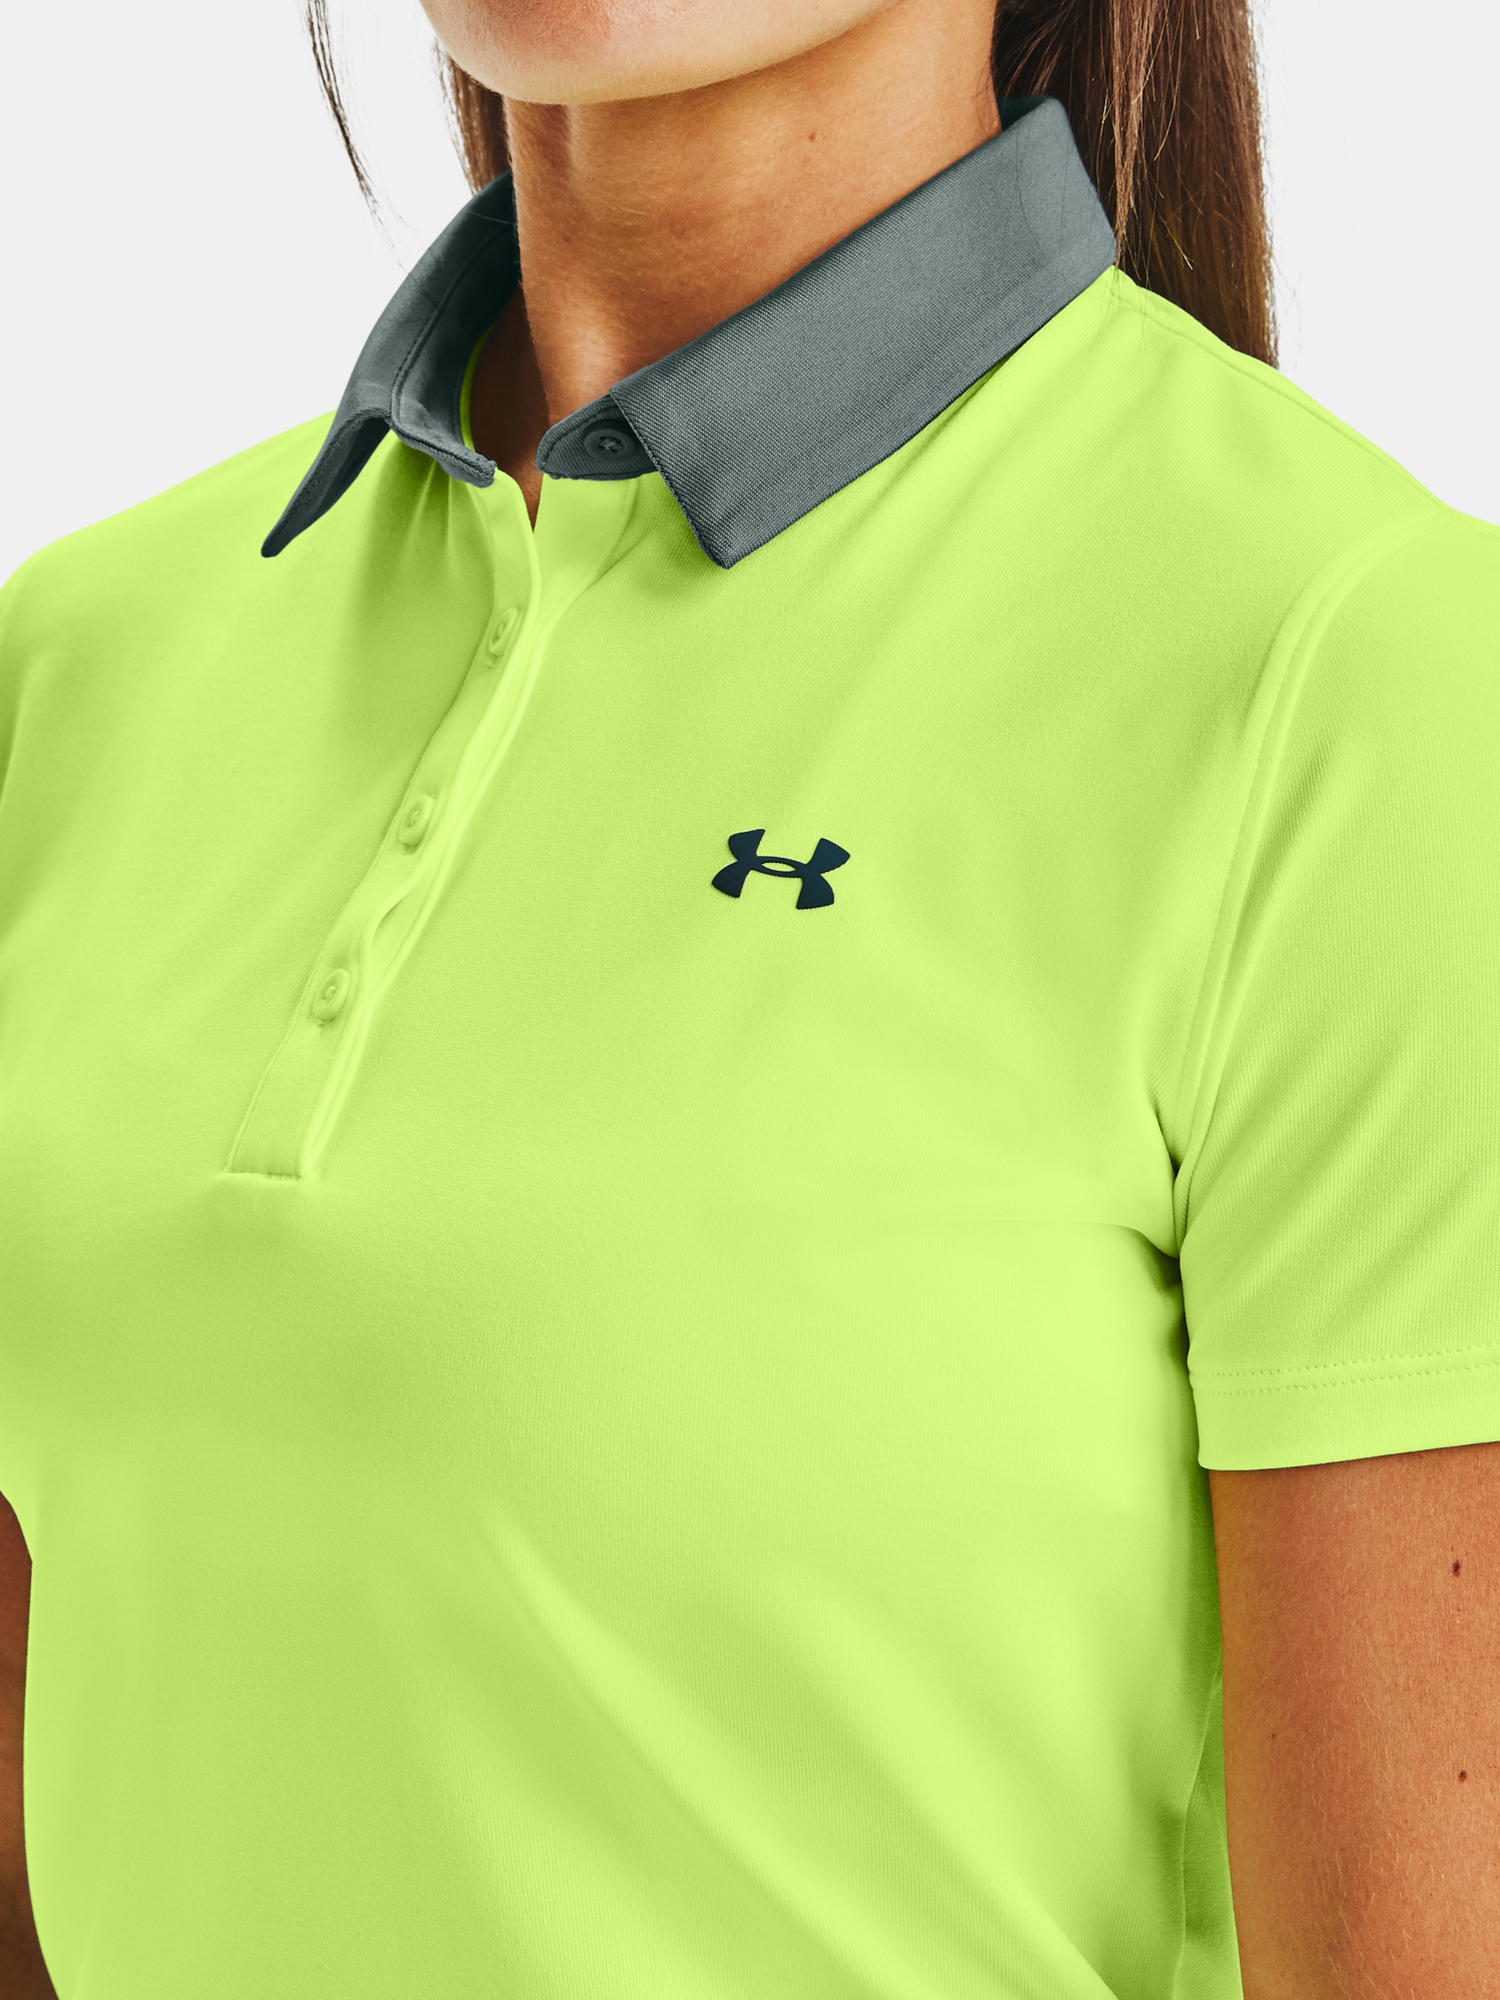 Tričko Under Armour Zinger Short Sleeve Polo (5)